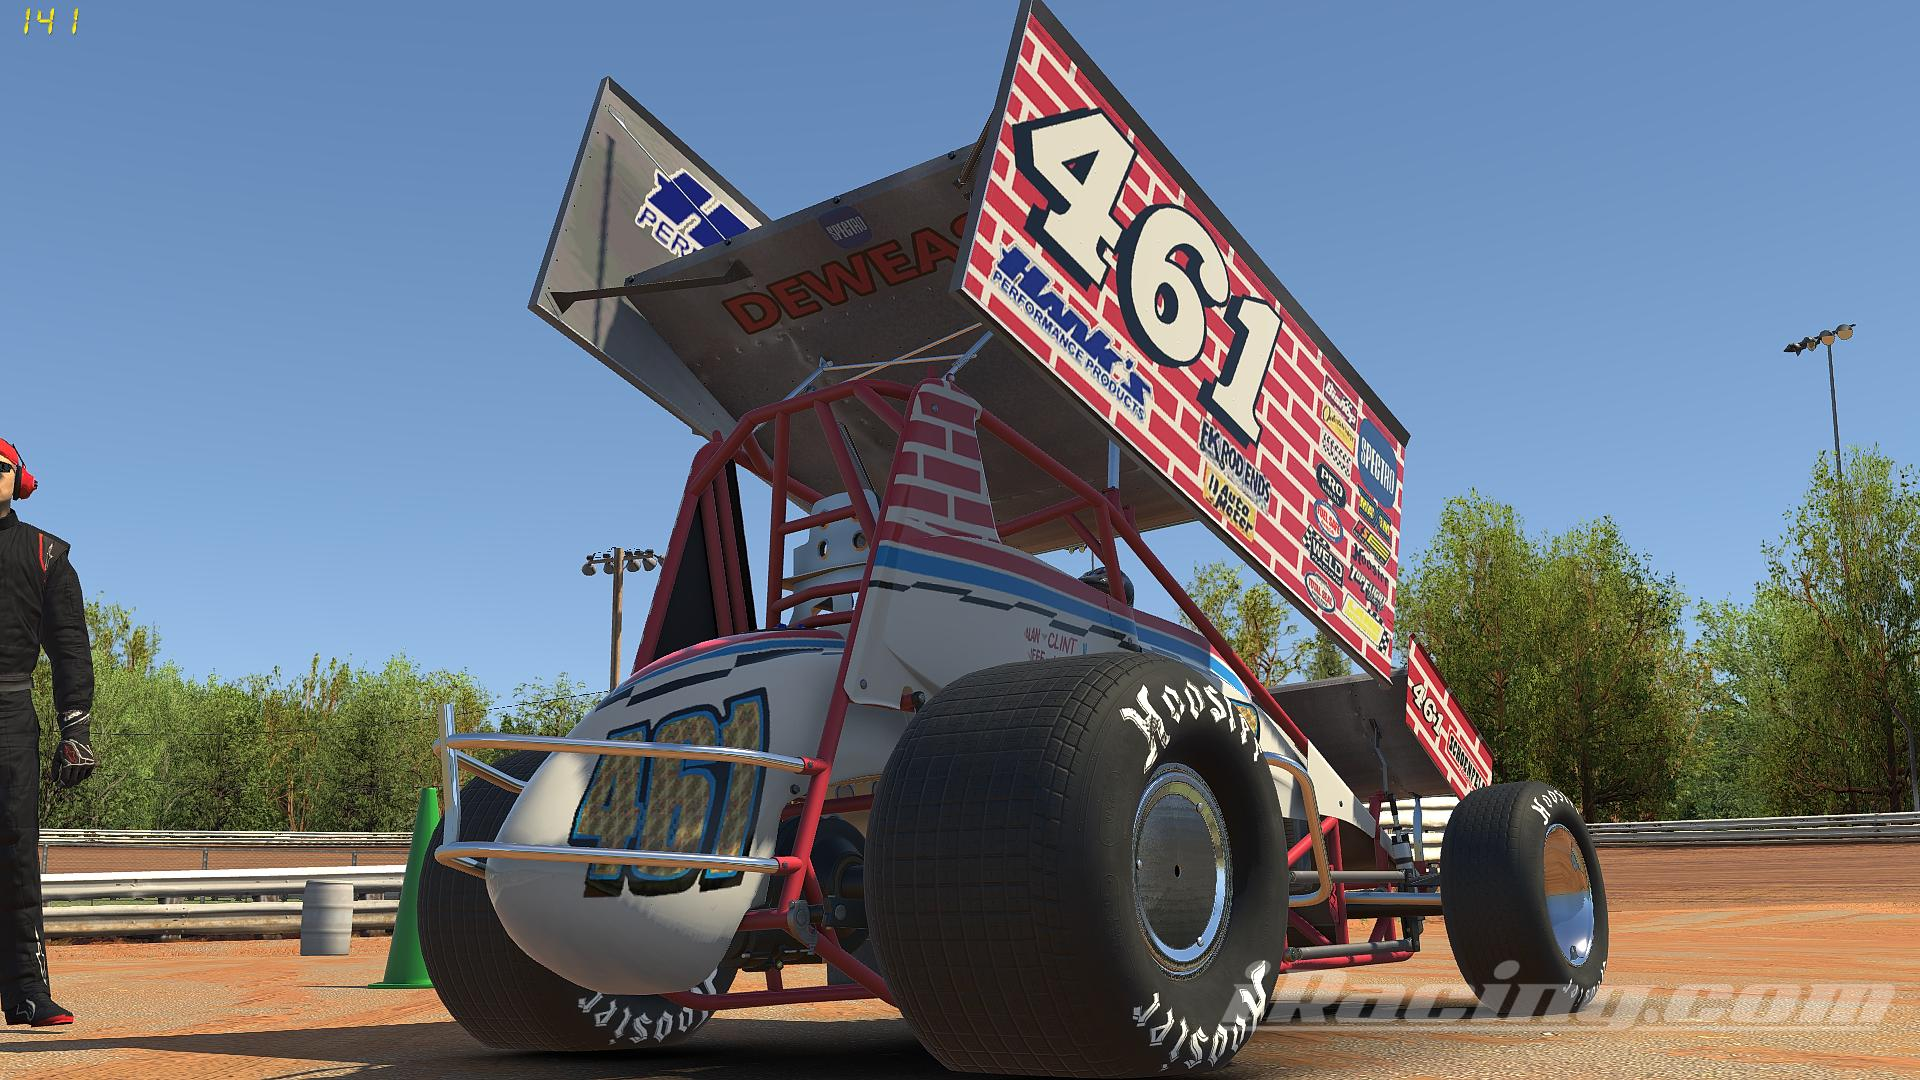 Preview of Lance Dewease/Walt Dyer 461 Brickmobile by Christopher Hockley